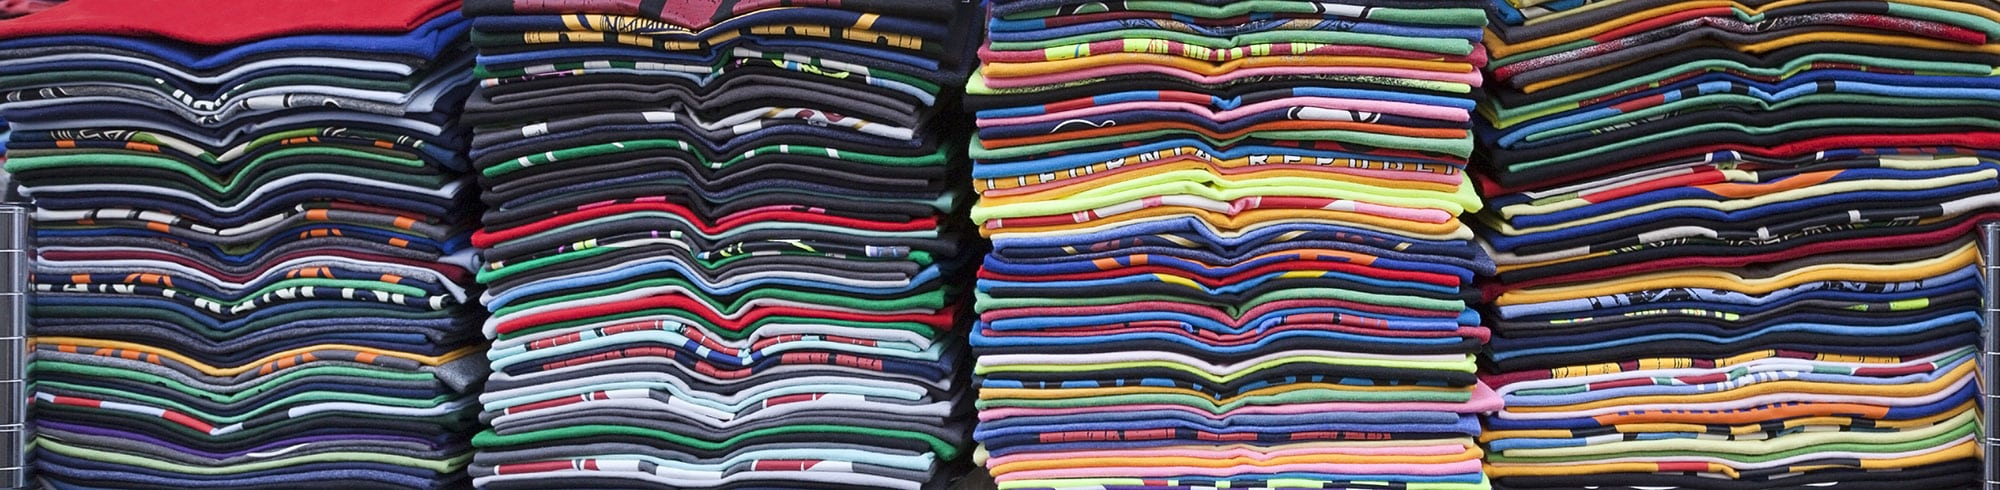 Screen printed t shirts wholesale contract screen printing for Screen printing t shirts cheap